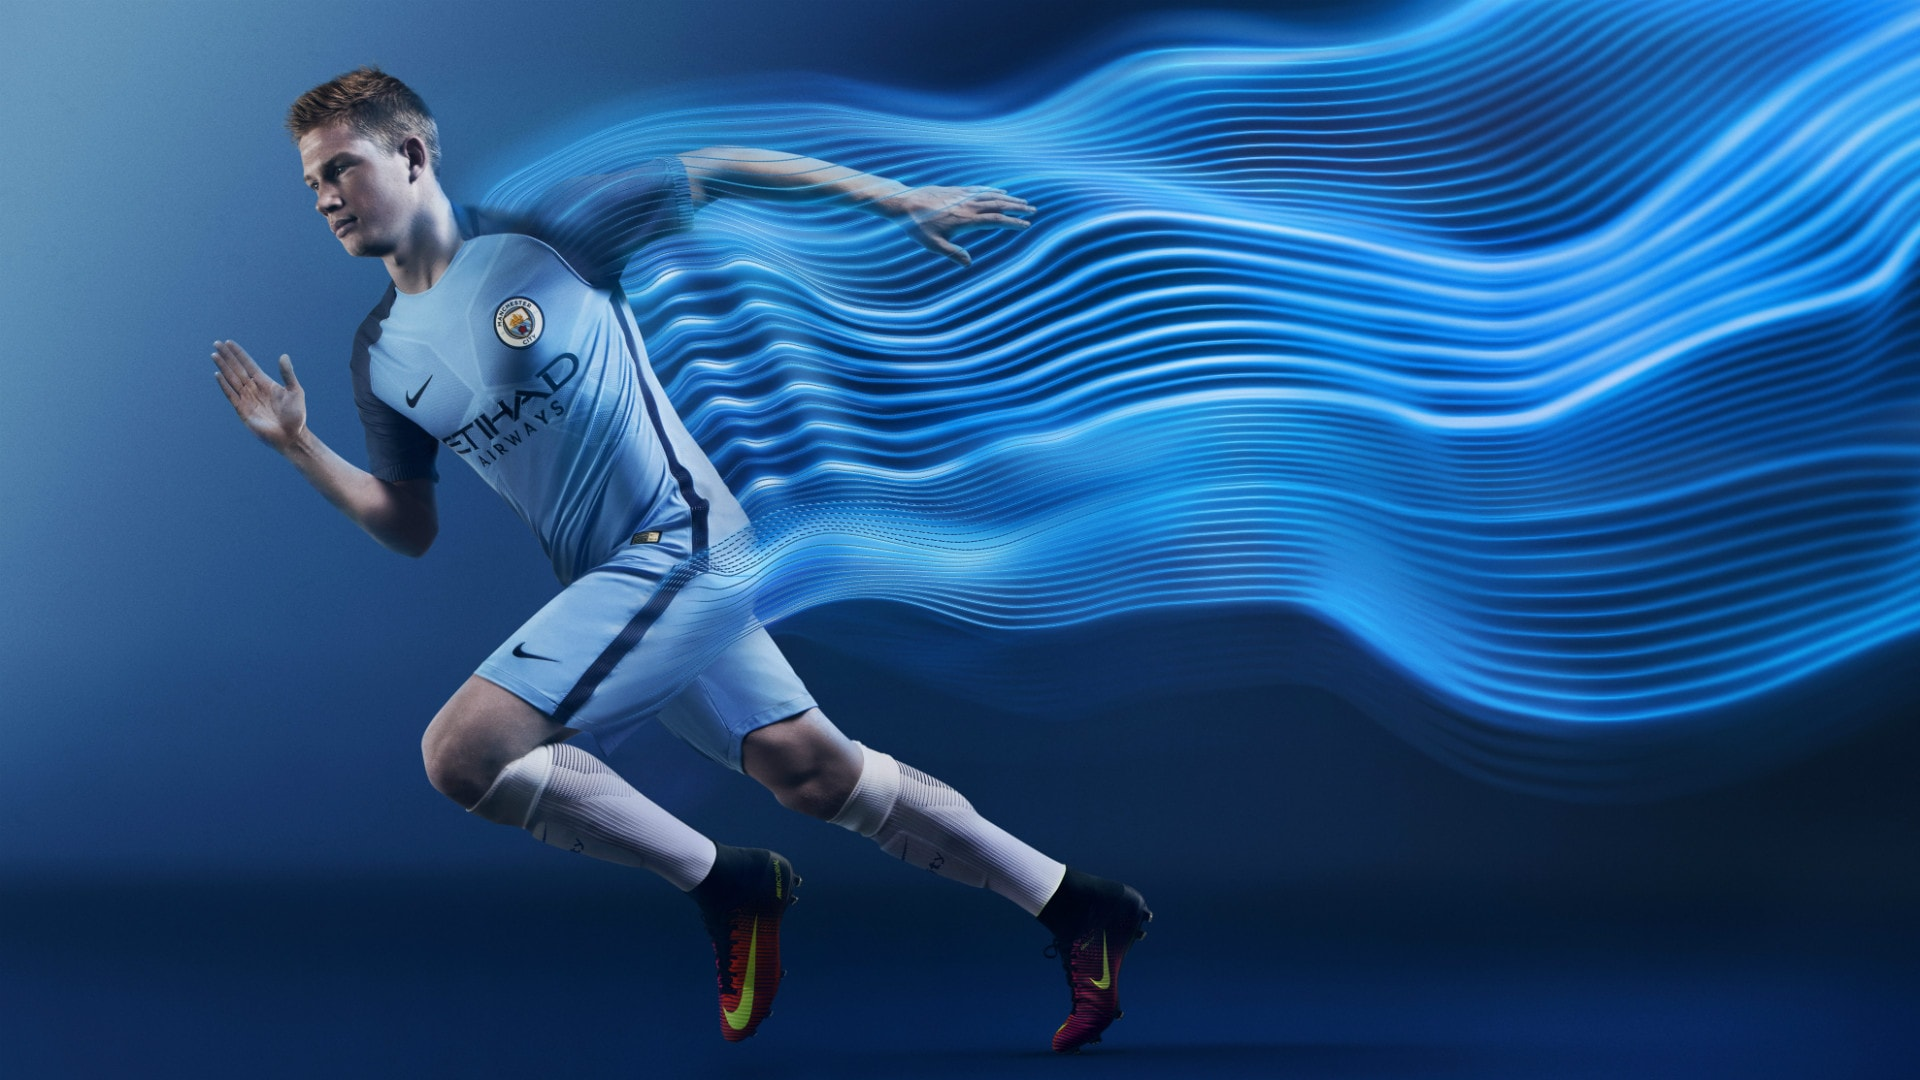 Kevin De Bruyne HD Wallpaper 2